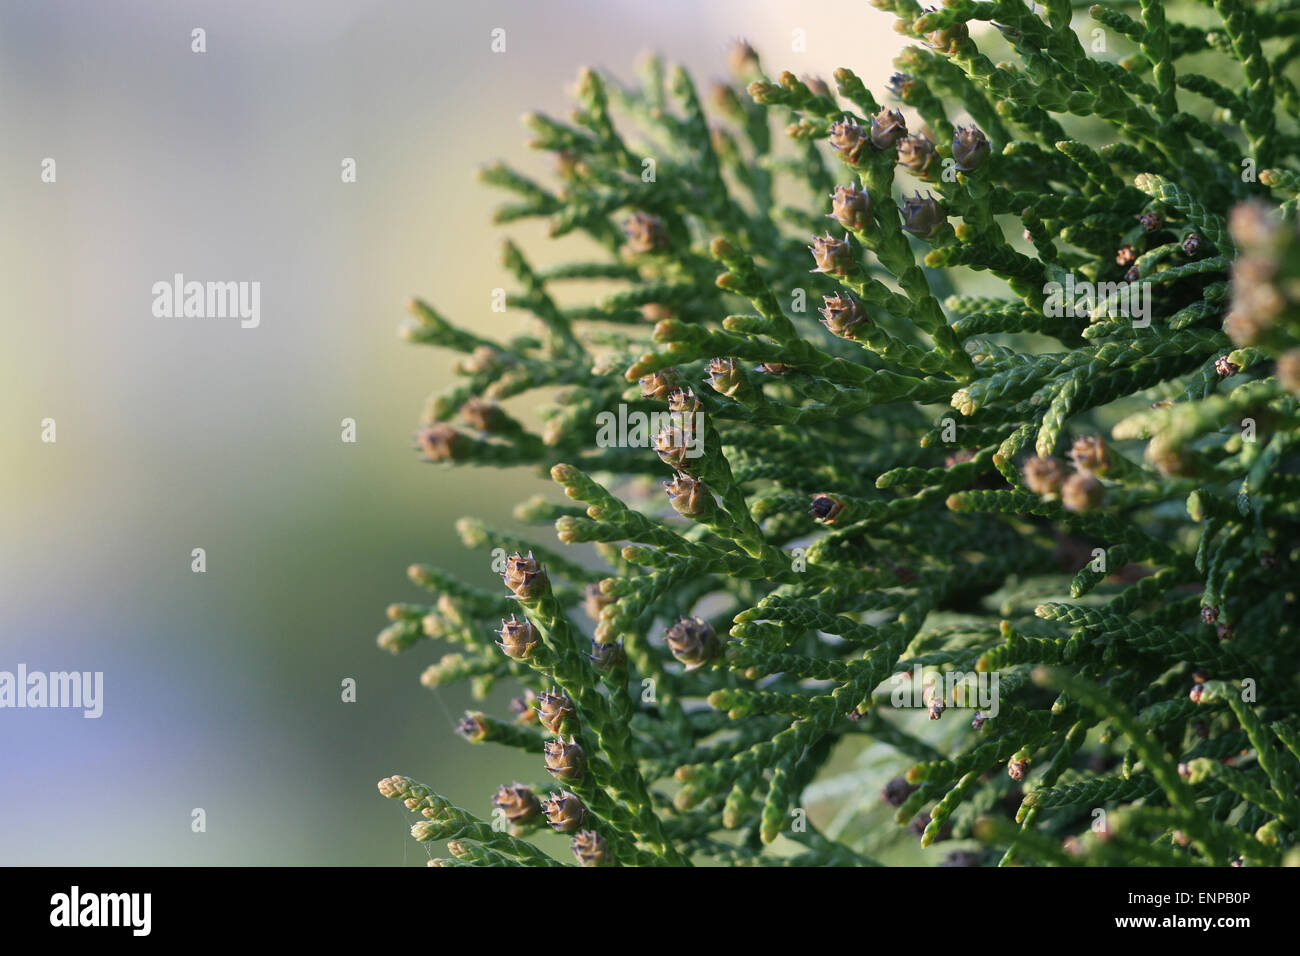 Swelled buds on thuya. Closeup of Thuja twig with soft background Stock Photo